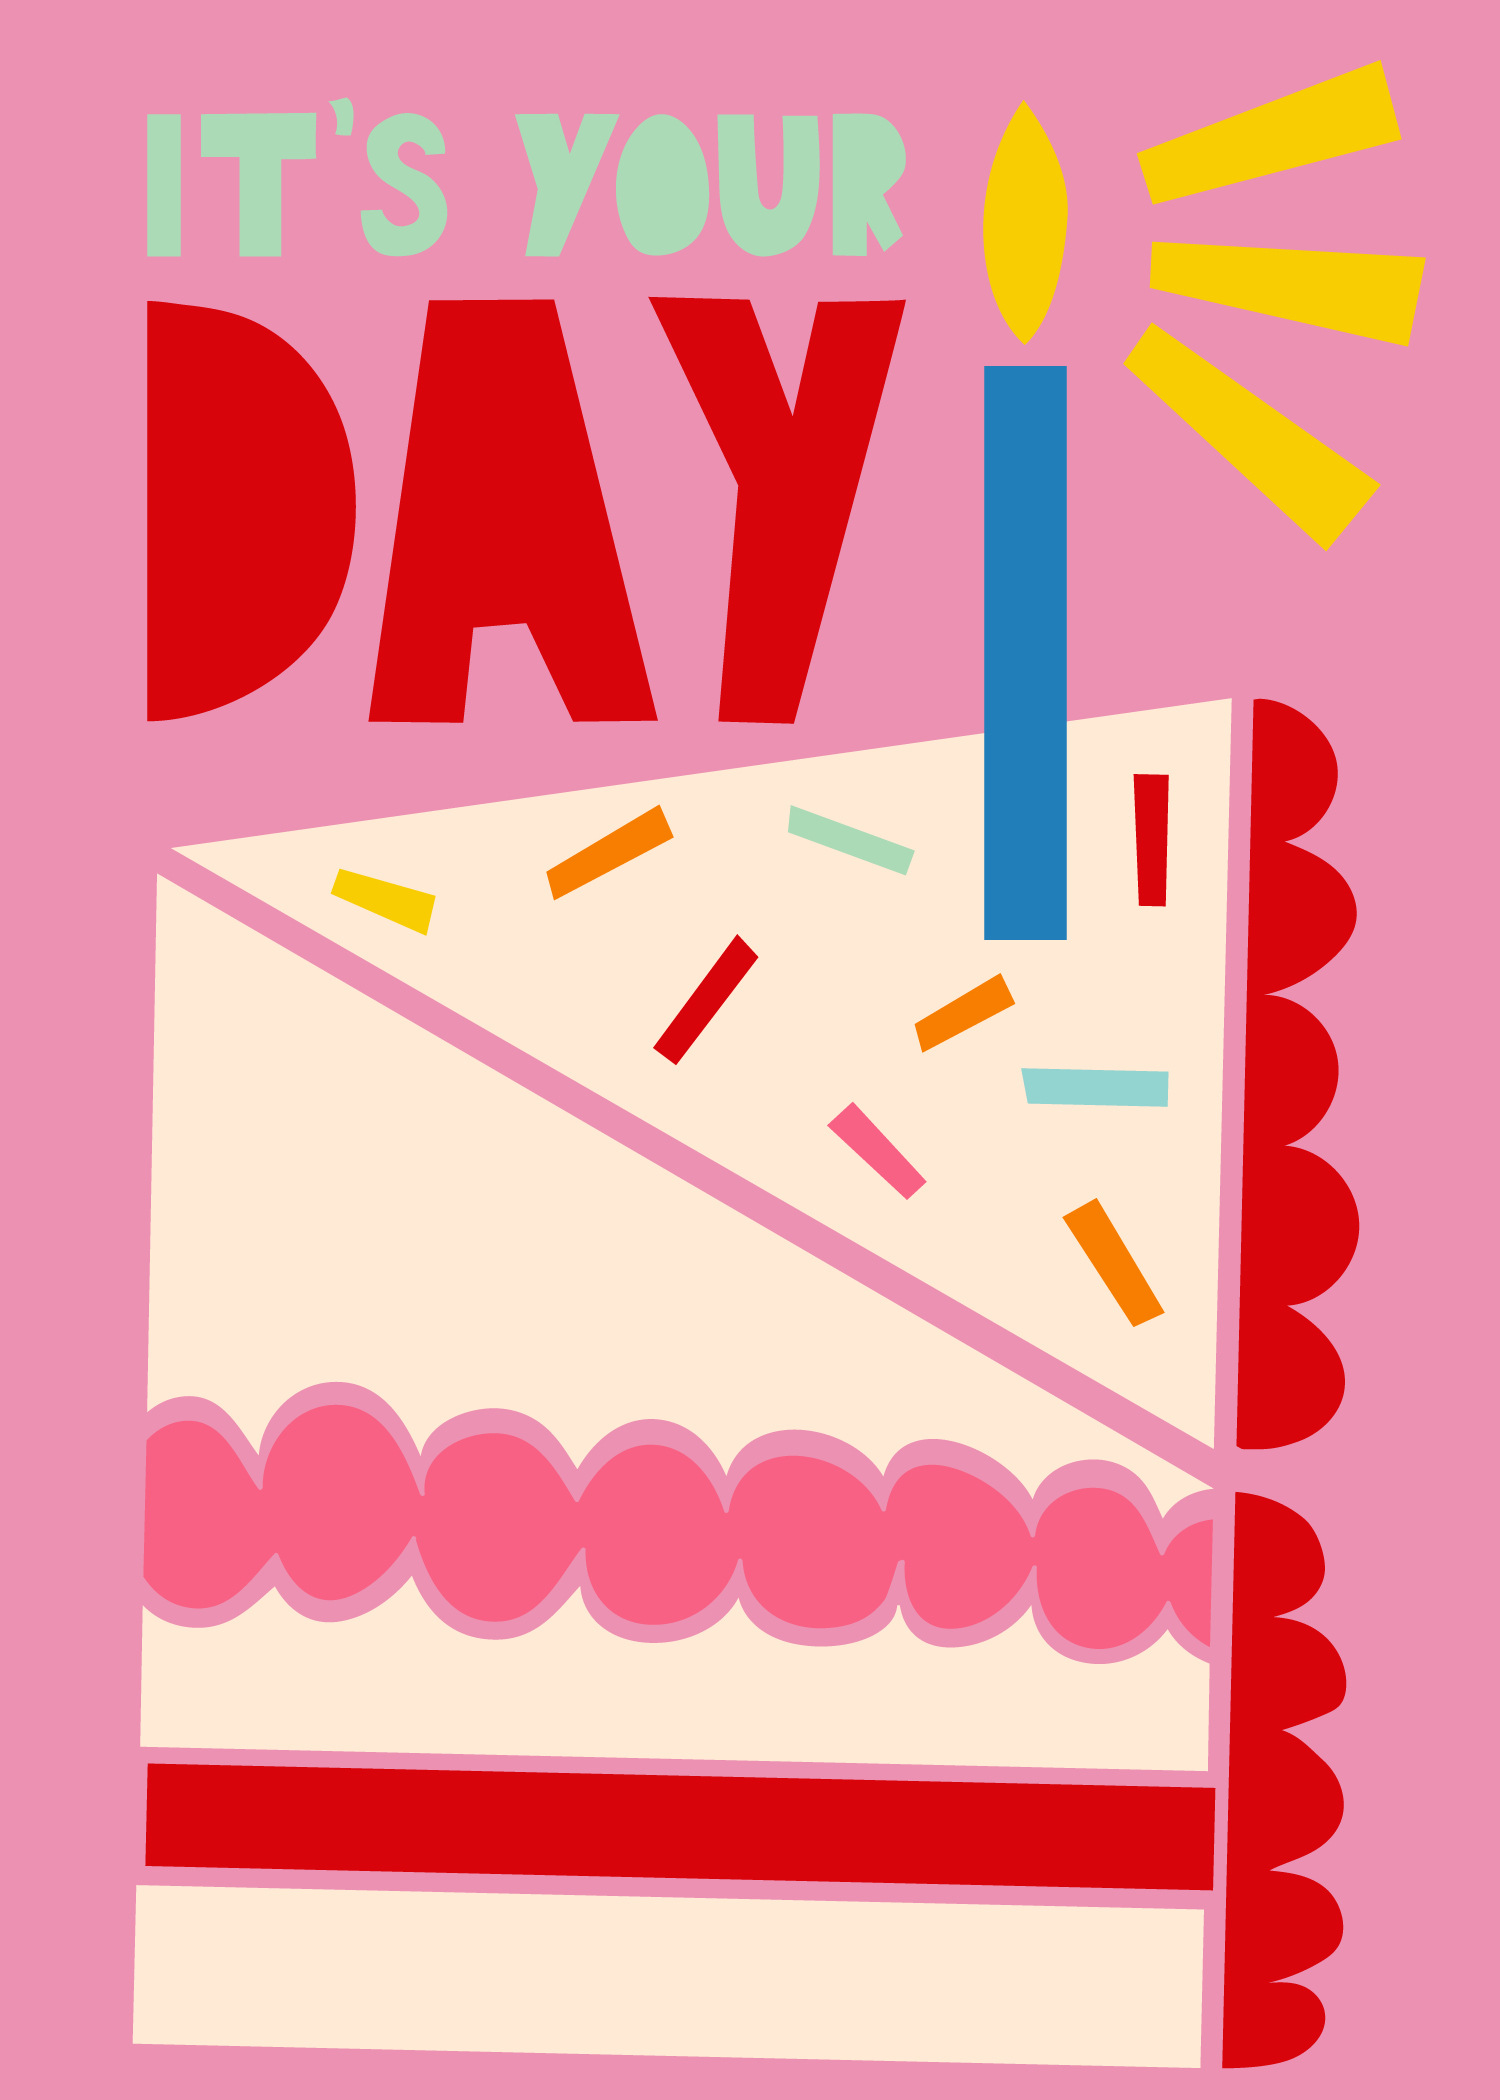 It_s your day-01.jpg